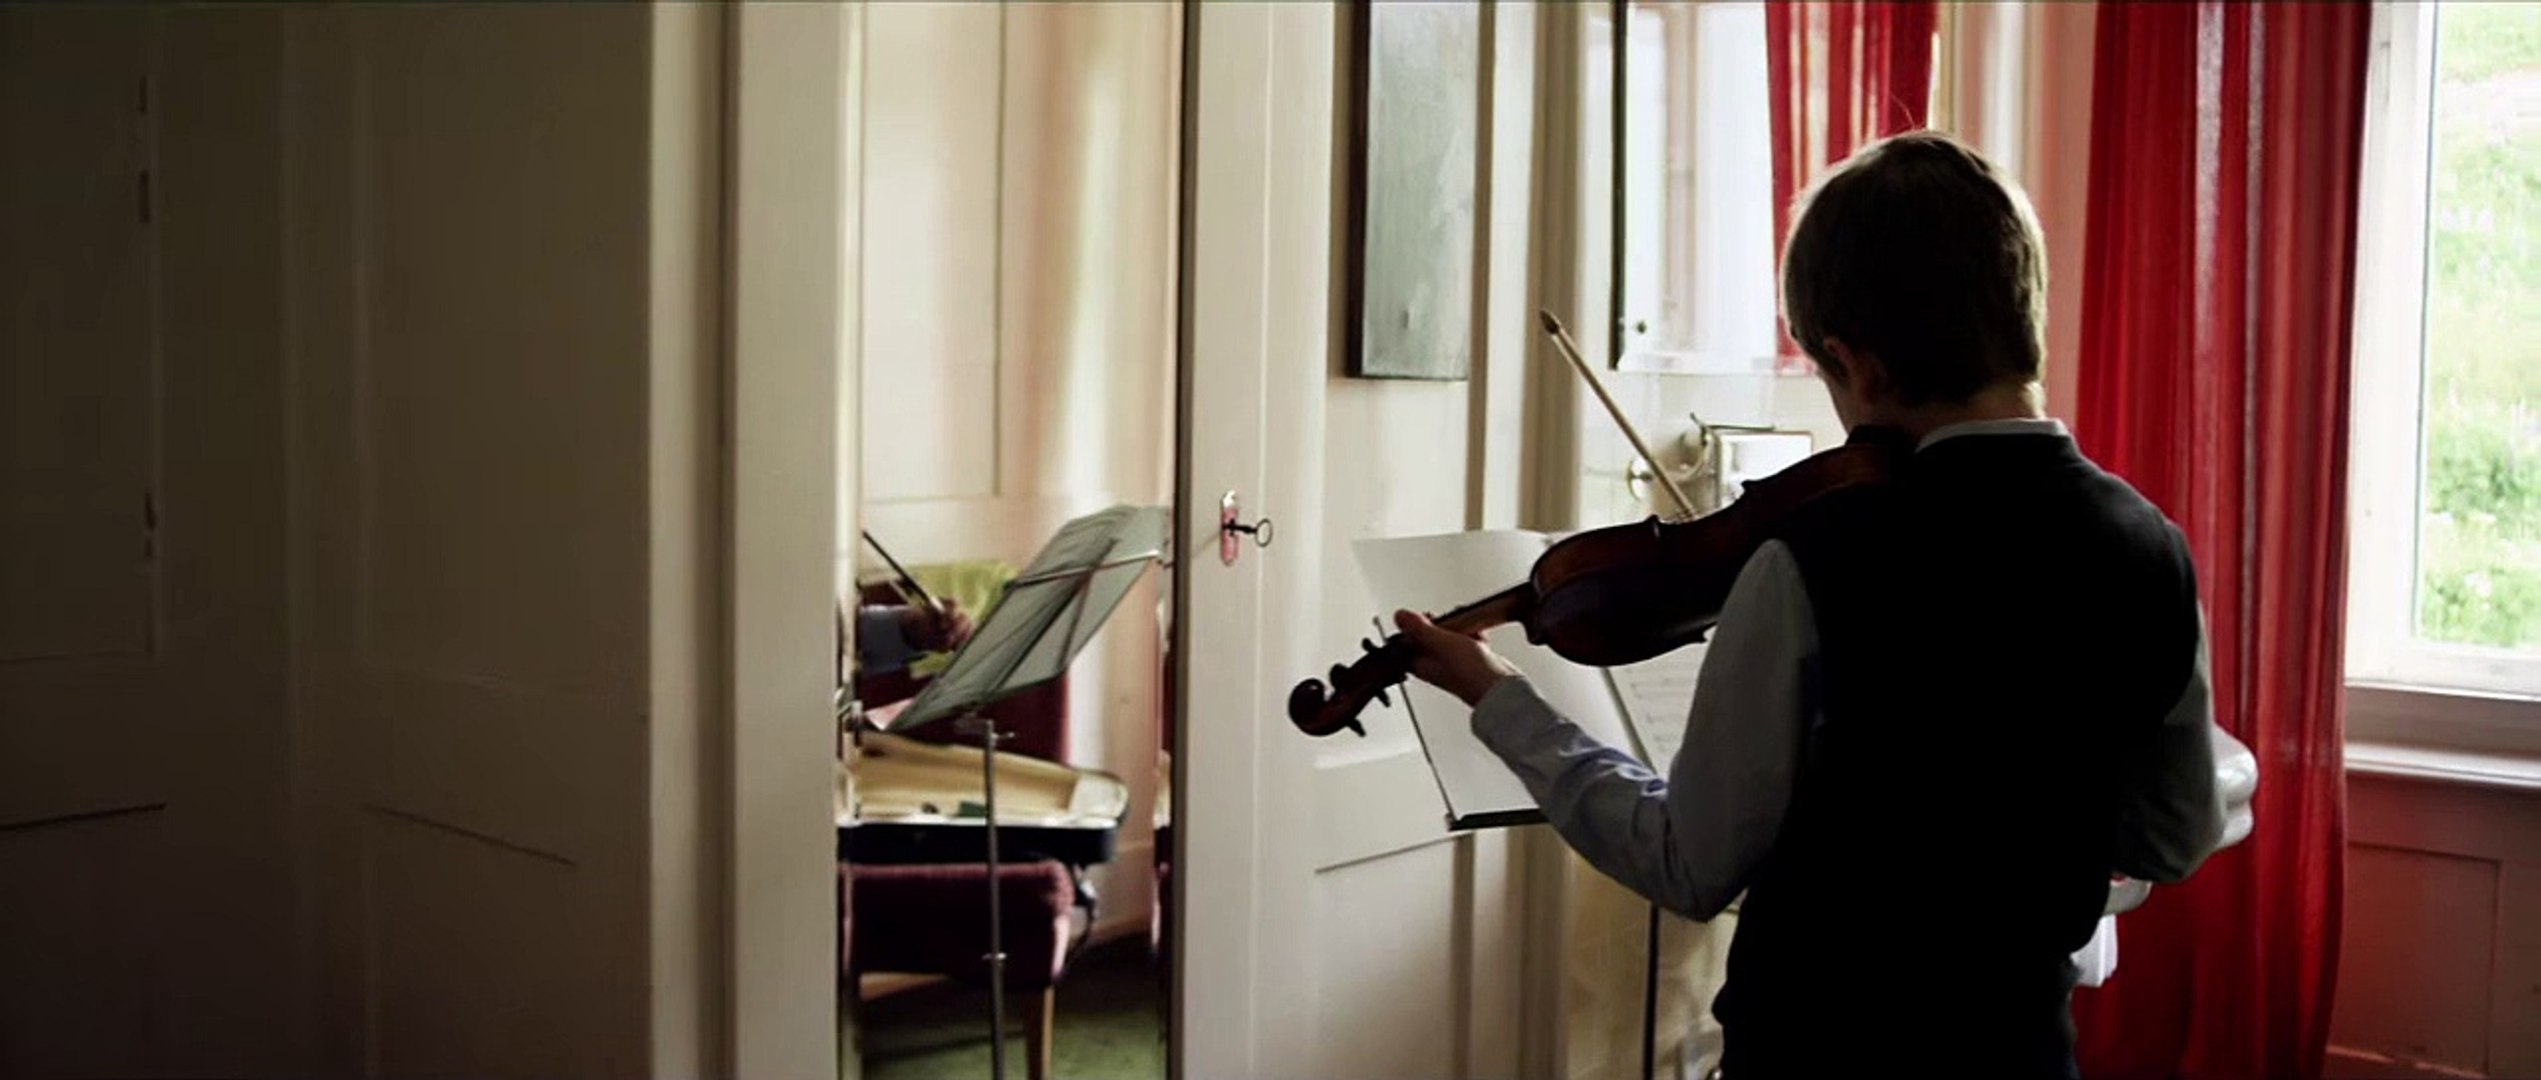 Youth 2015 HD Movie Clip What's the Composer's Name - Michael Caine Drama Movie